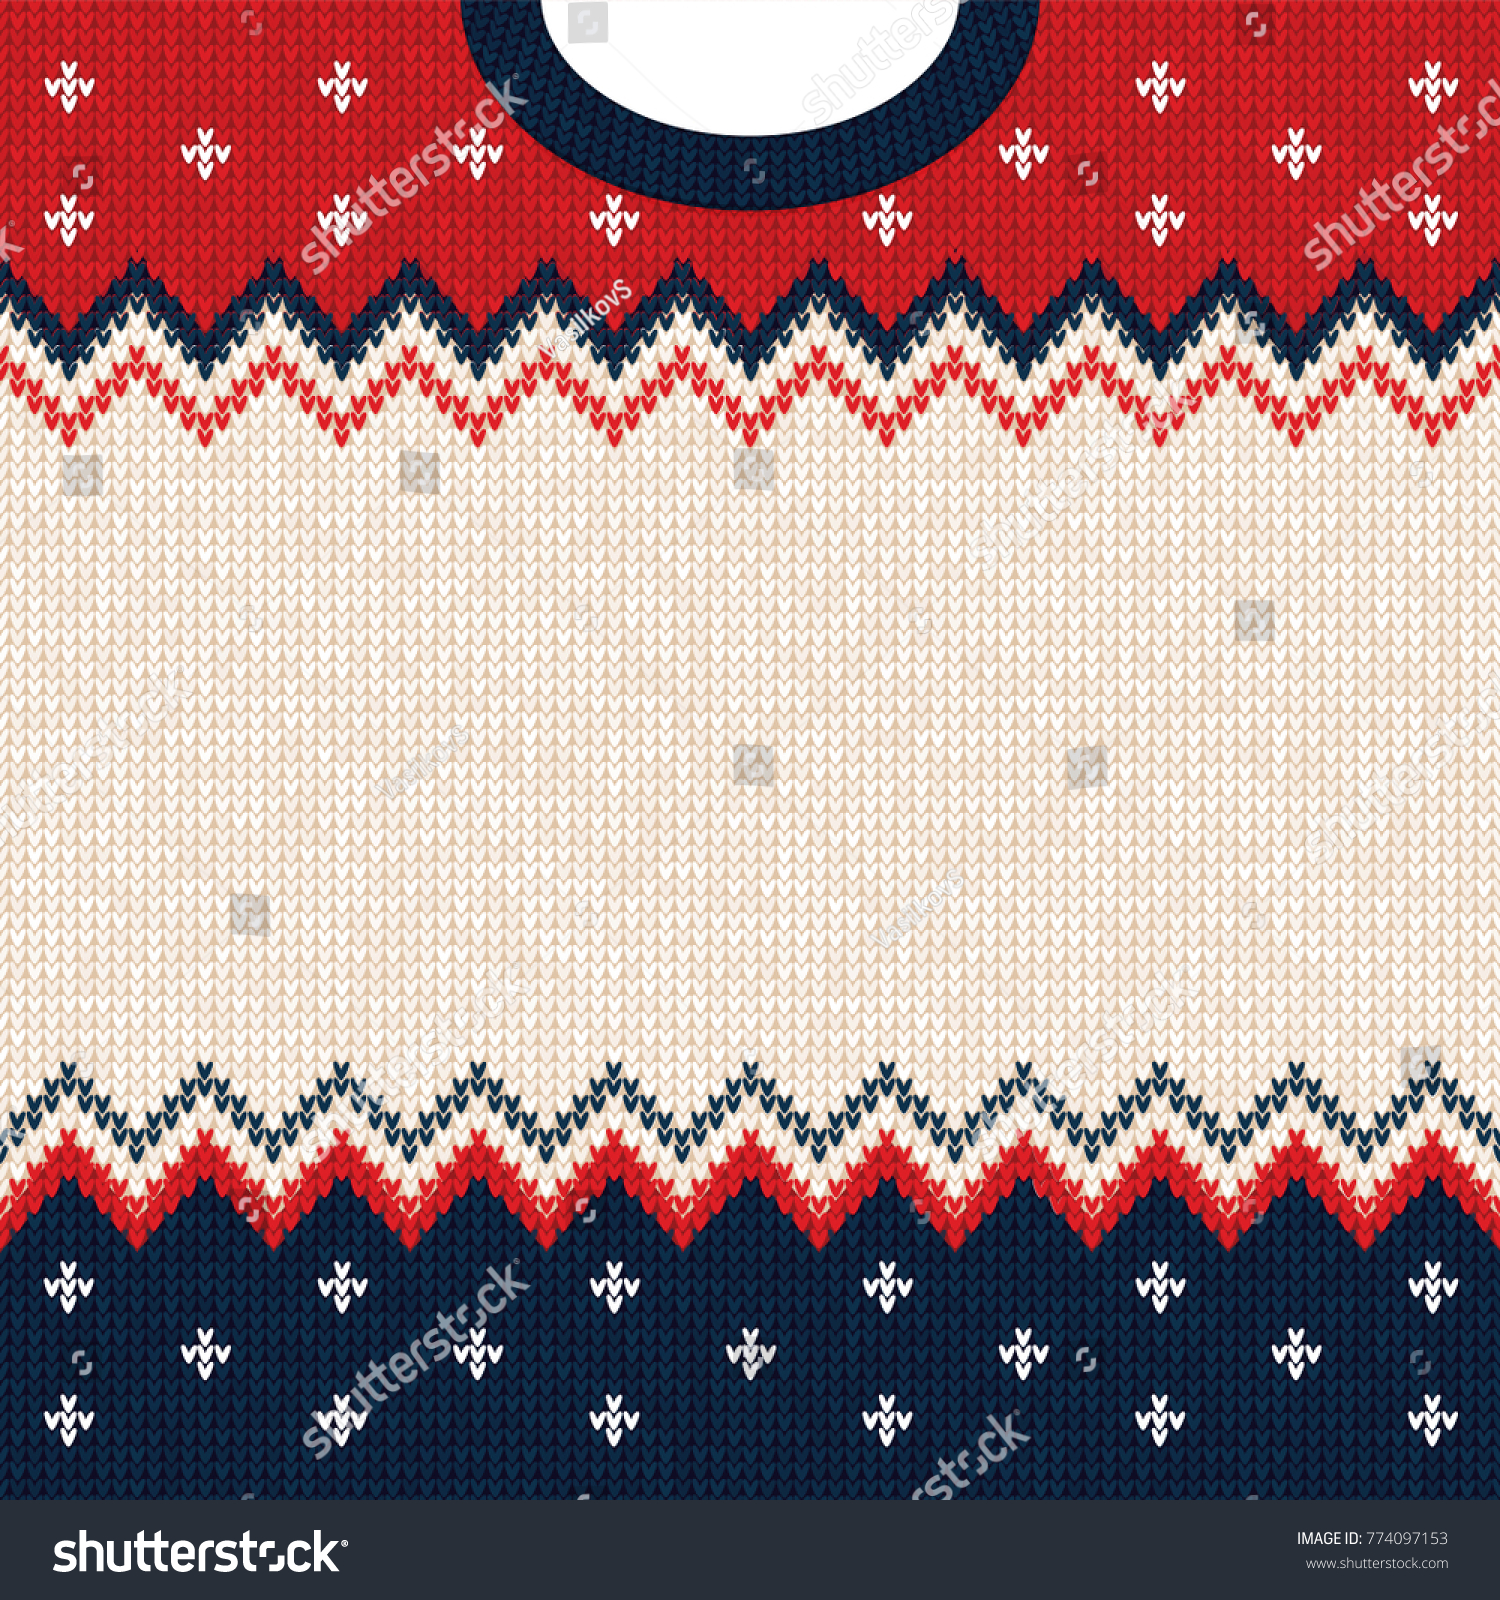 Ugly Sweater Merry Christmas Happy New Stock Vector (Royalty Free ...